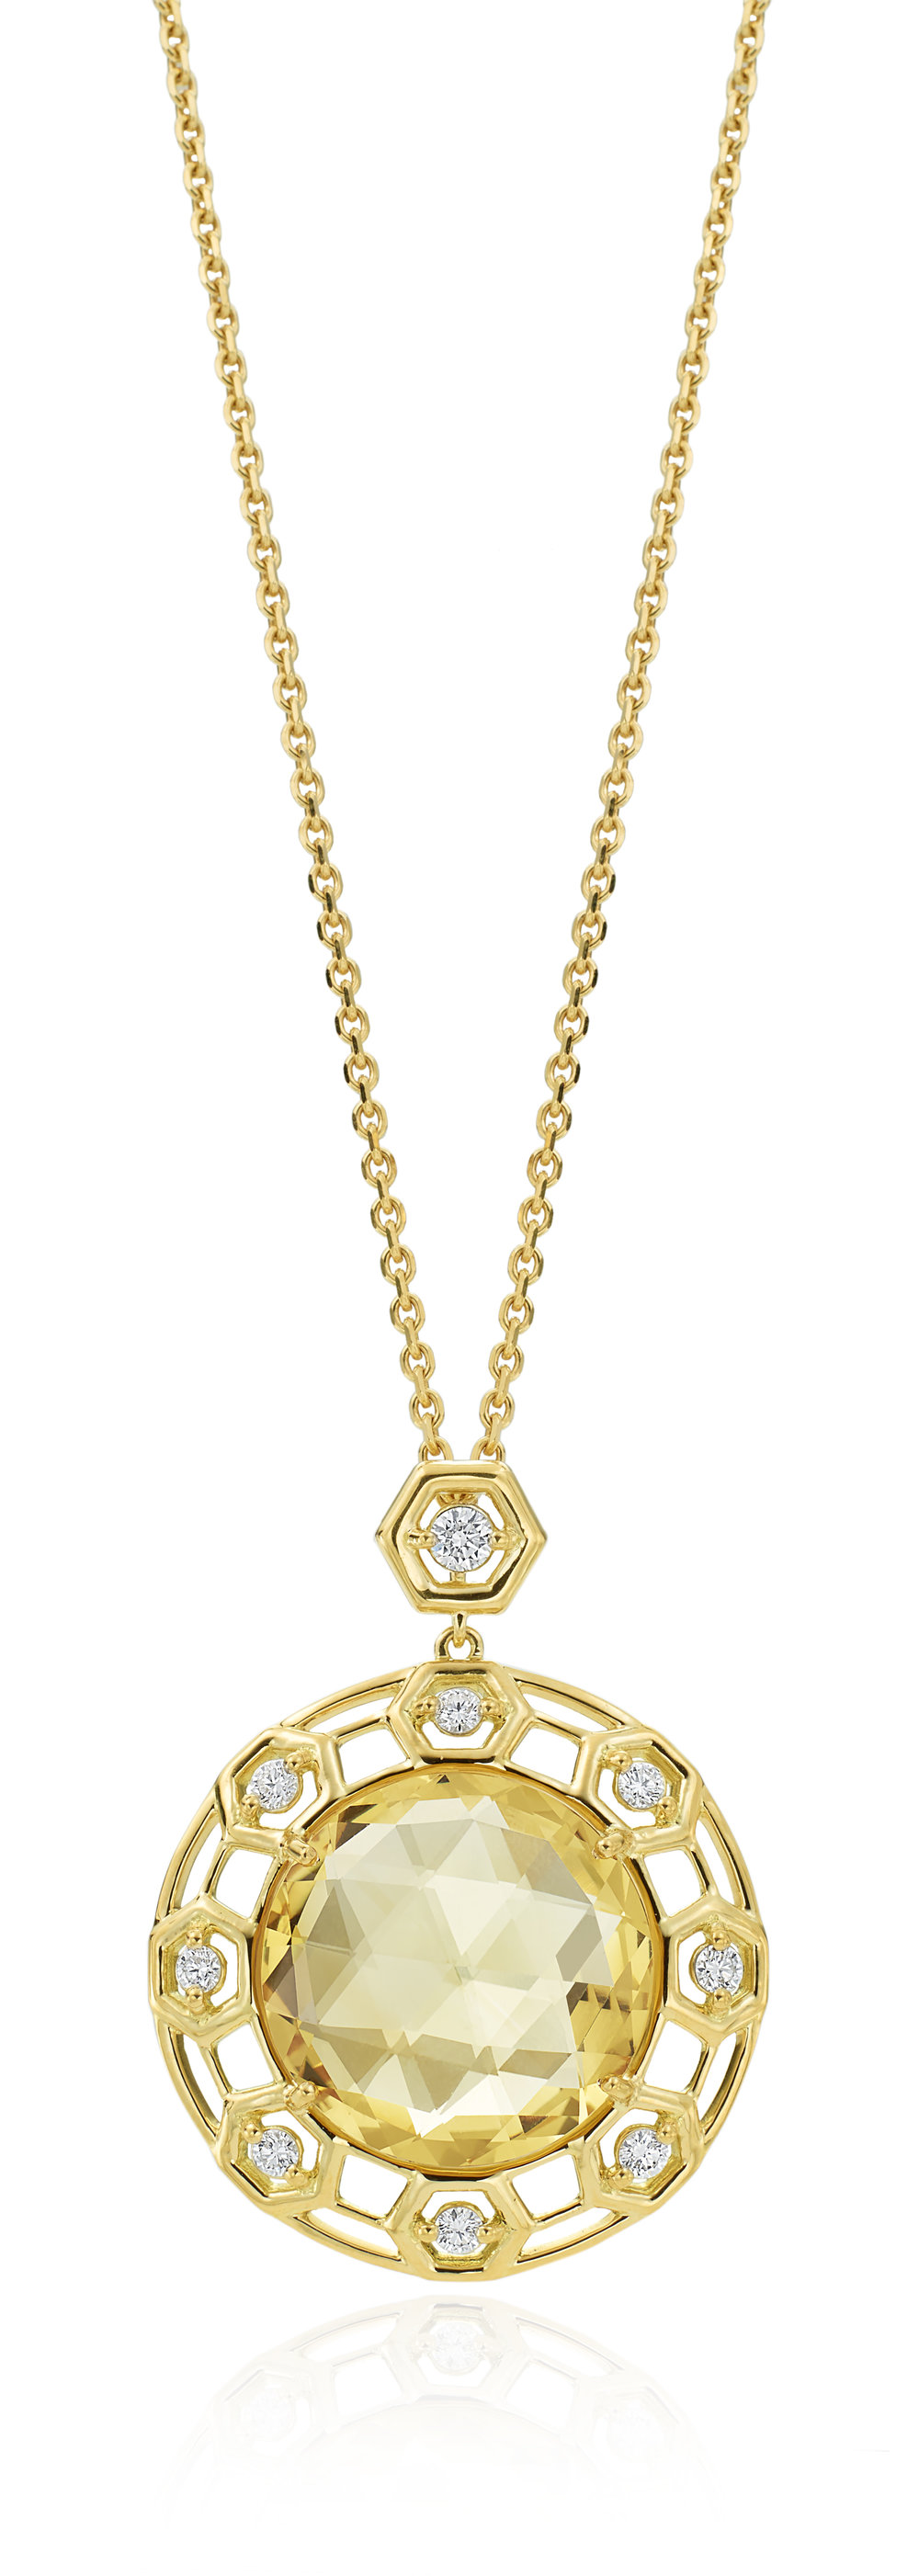 "Gold & Diamond ""B"" Pendant"